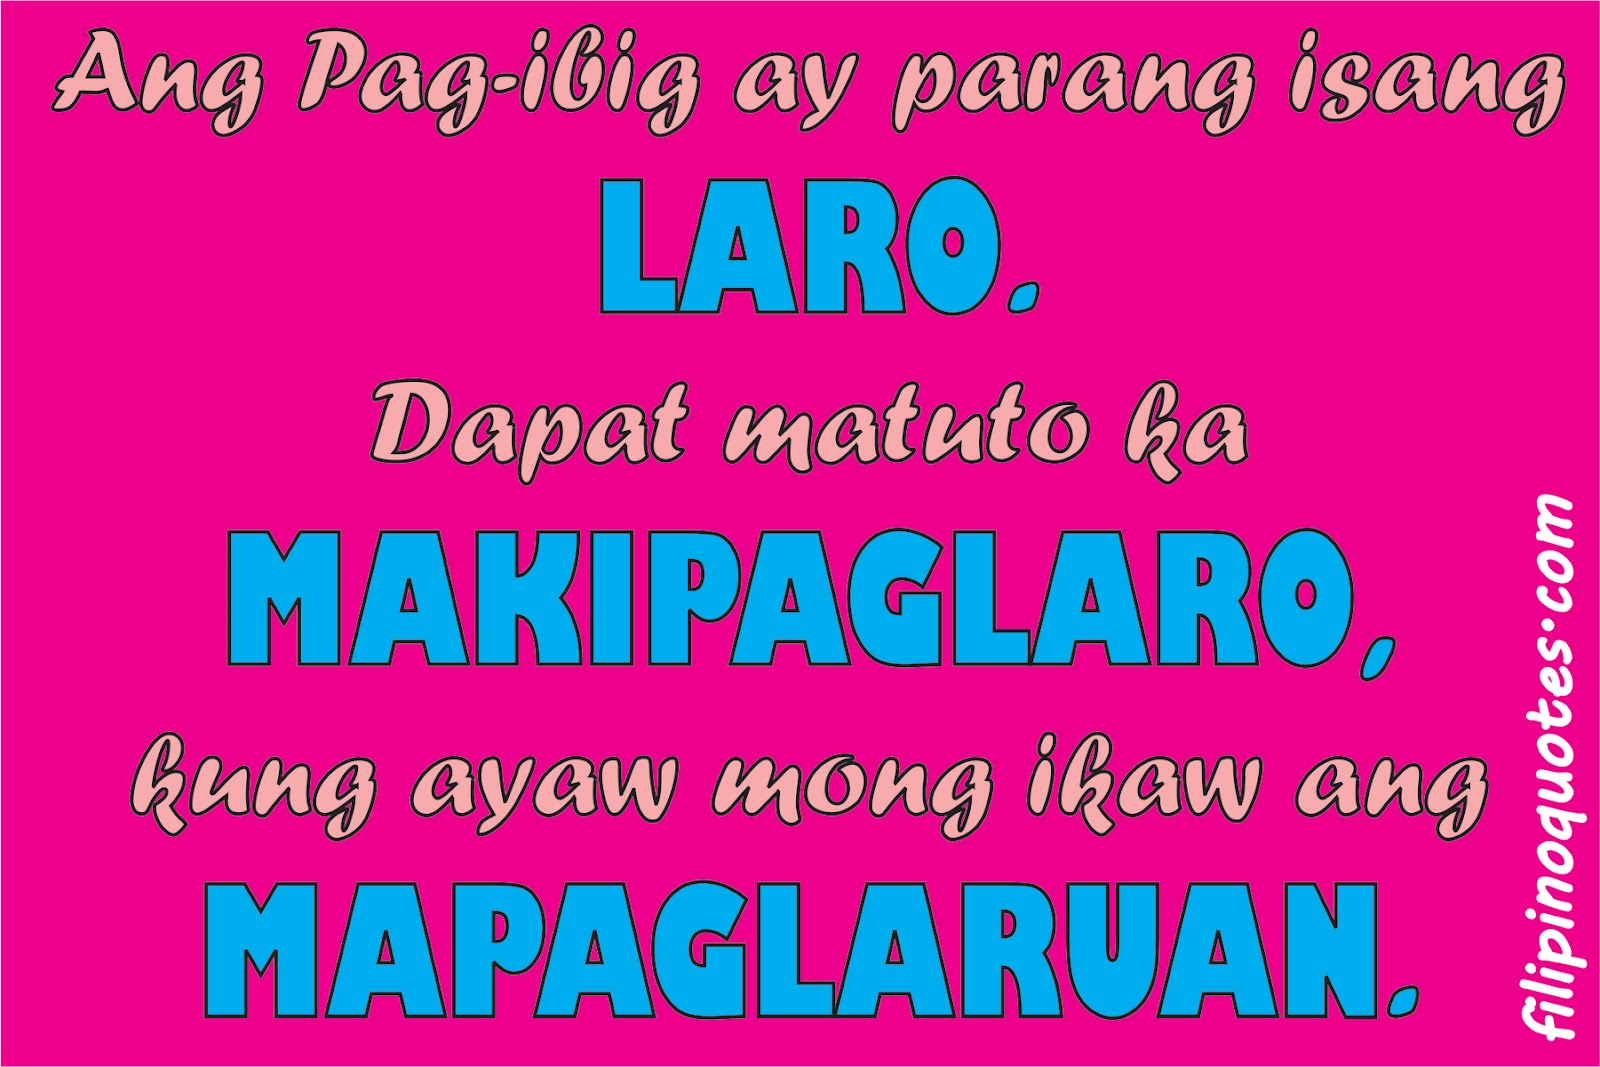 Joke Love Quotes For Him Tagalog : Tagalog Love Quotes (May 2012) - Tagalog Love Quotes